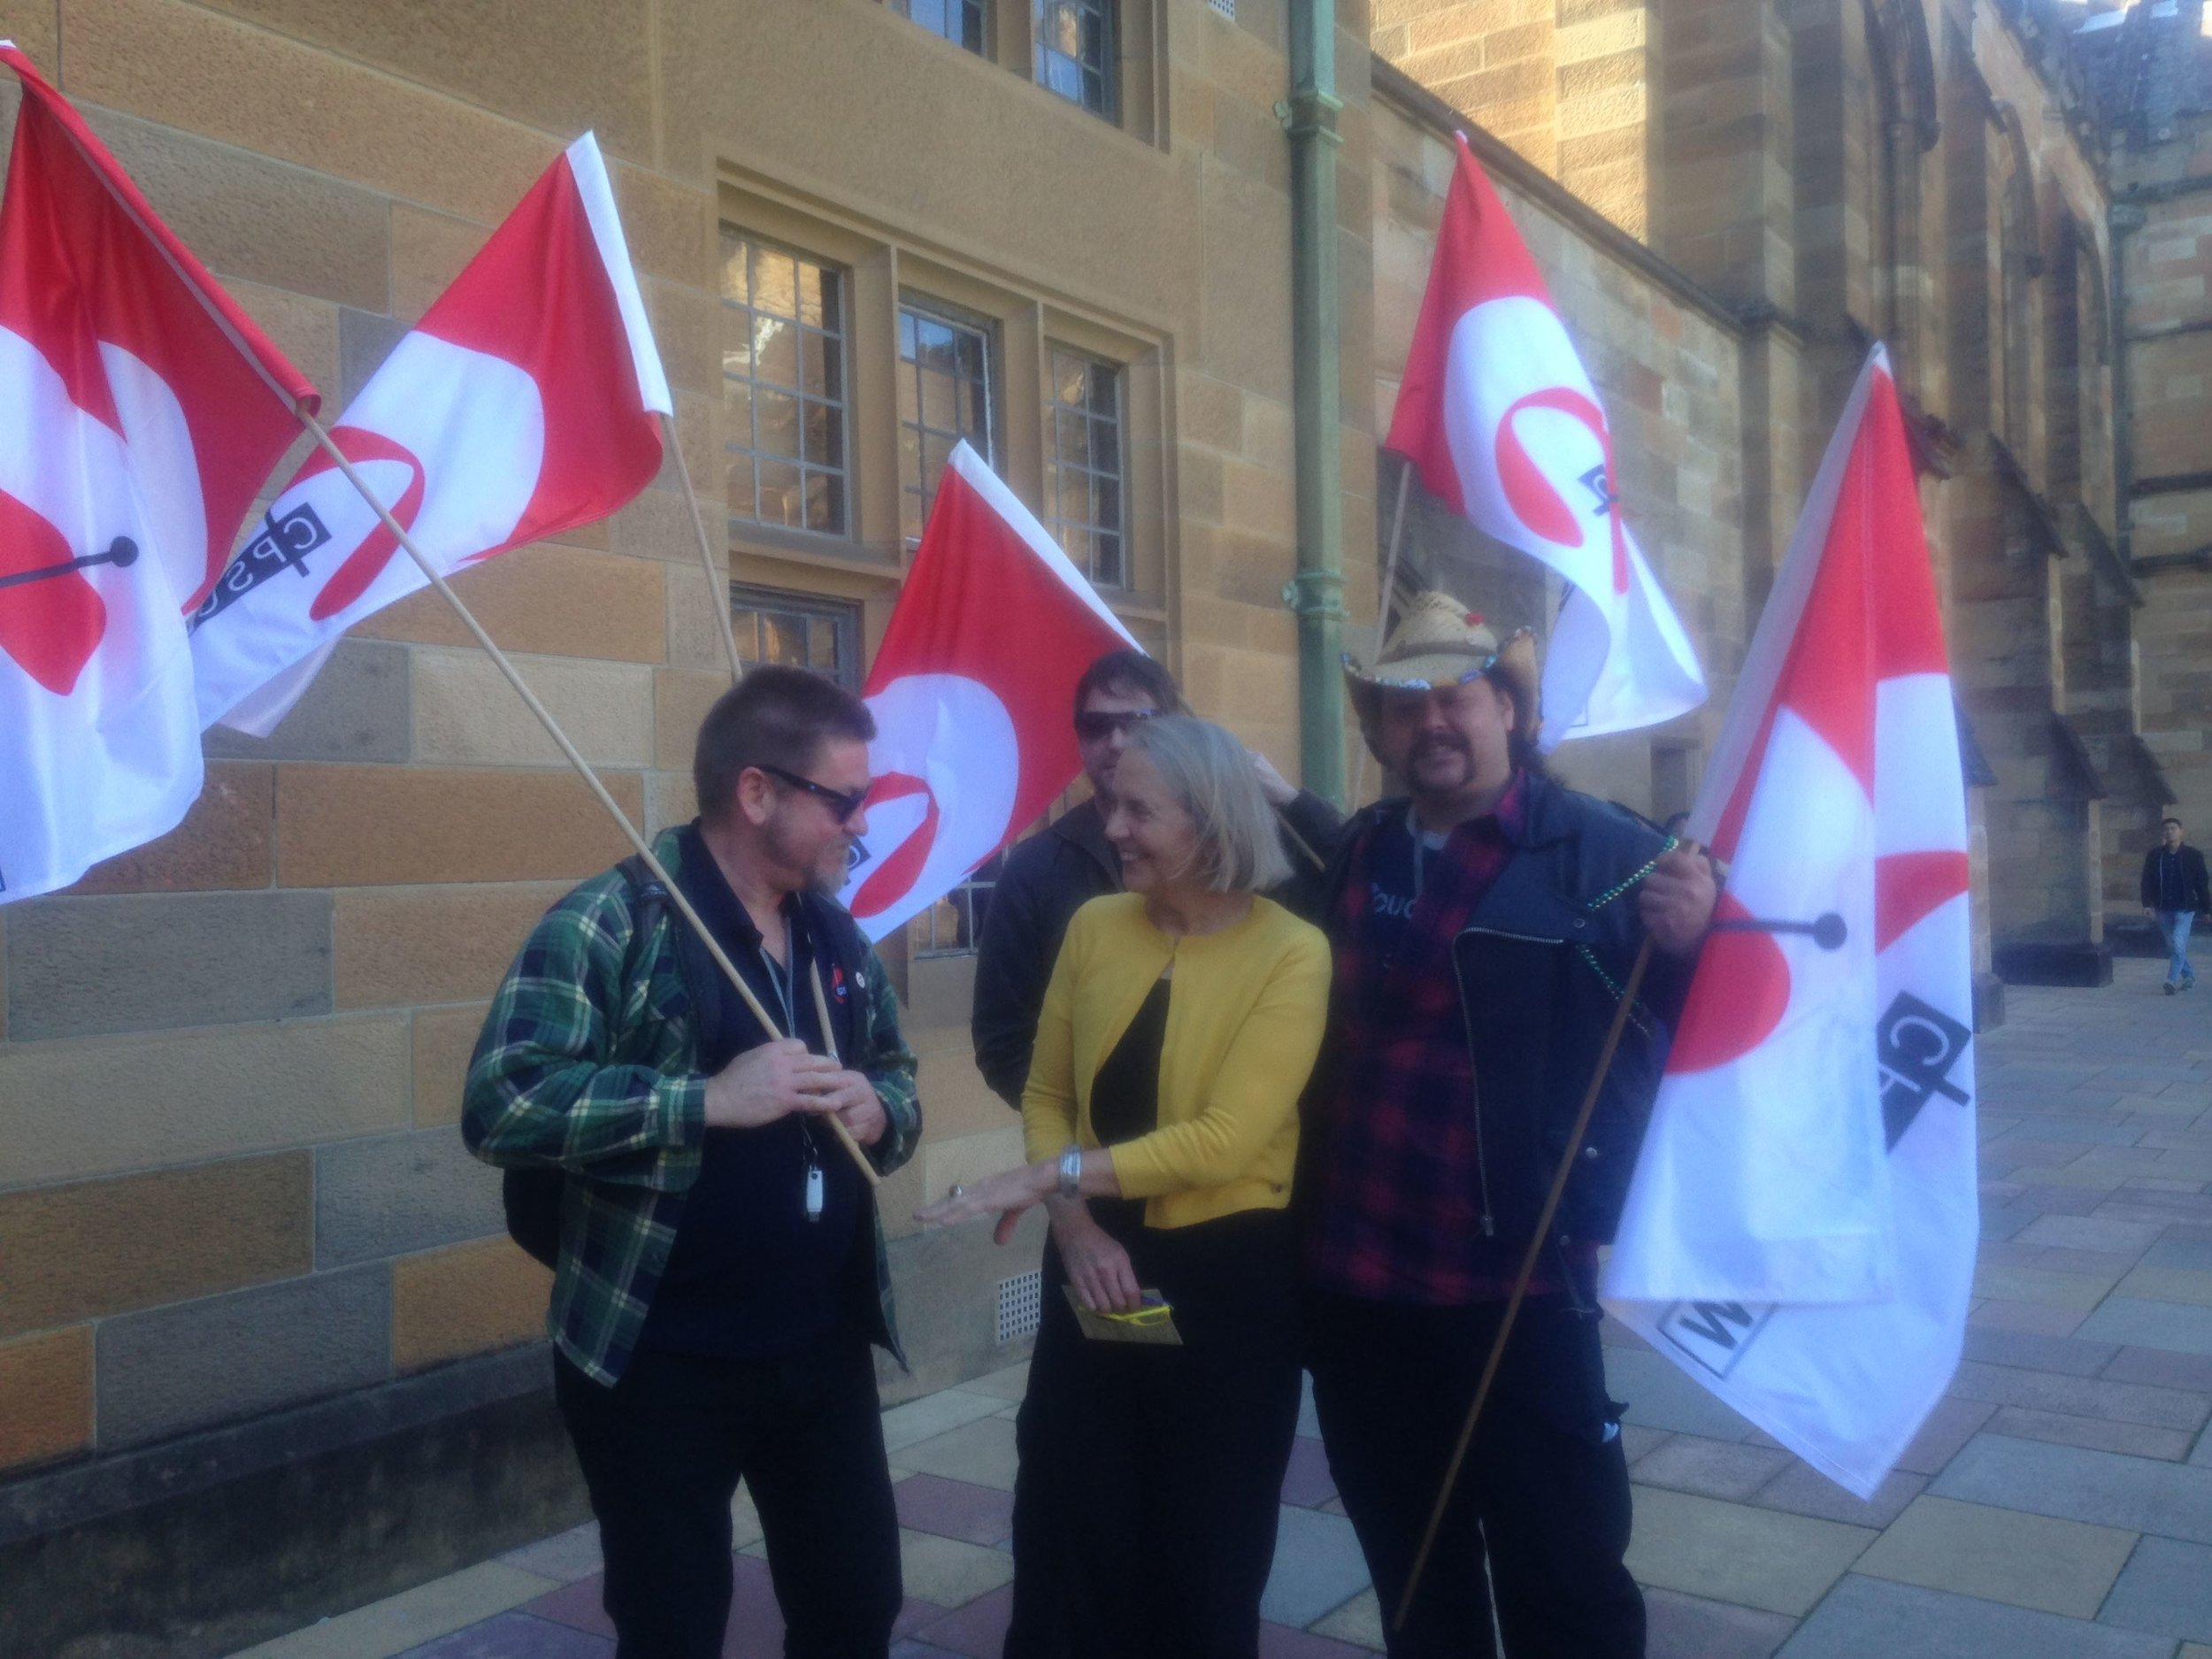 Senator Lee Rhiannon, an alumni of UNSW, surrounded by flag-bearing supporters outside Vice-Chancellor Michael Spence's office in the Quadrangle of the University of Sydney